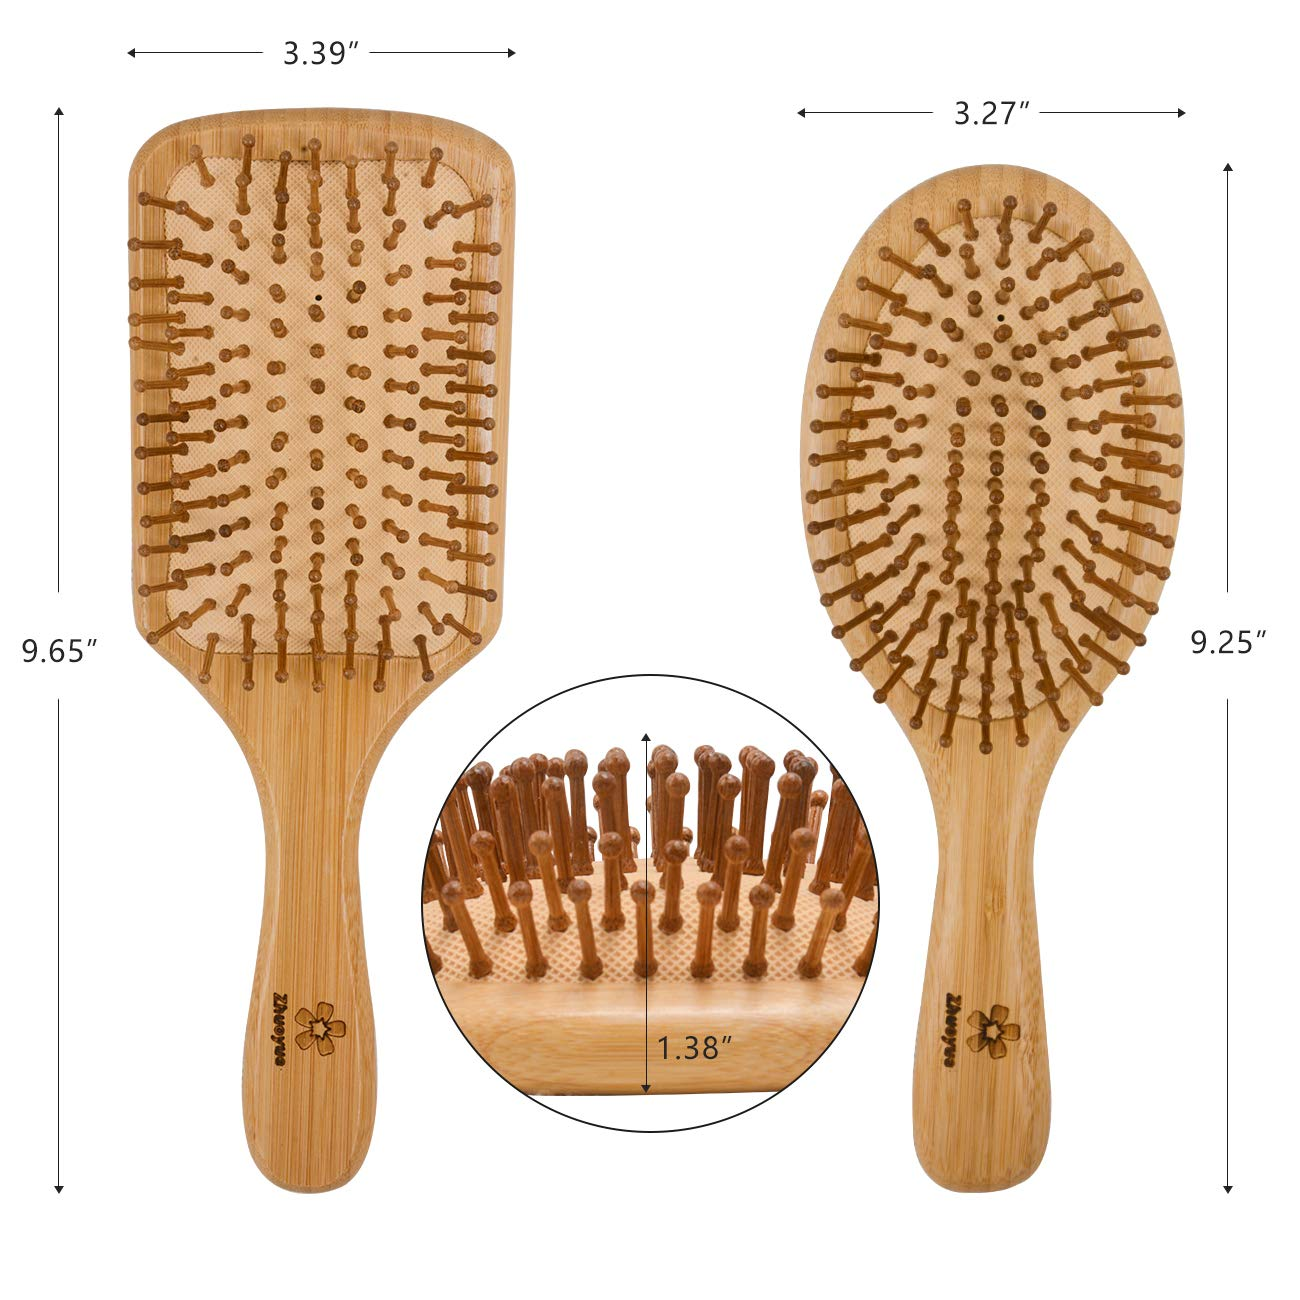 Zhuoyue Wooden Bamboo Hair Brush - Best wooden paddle brush